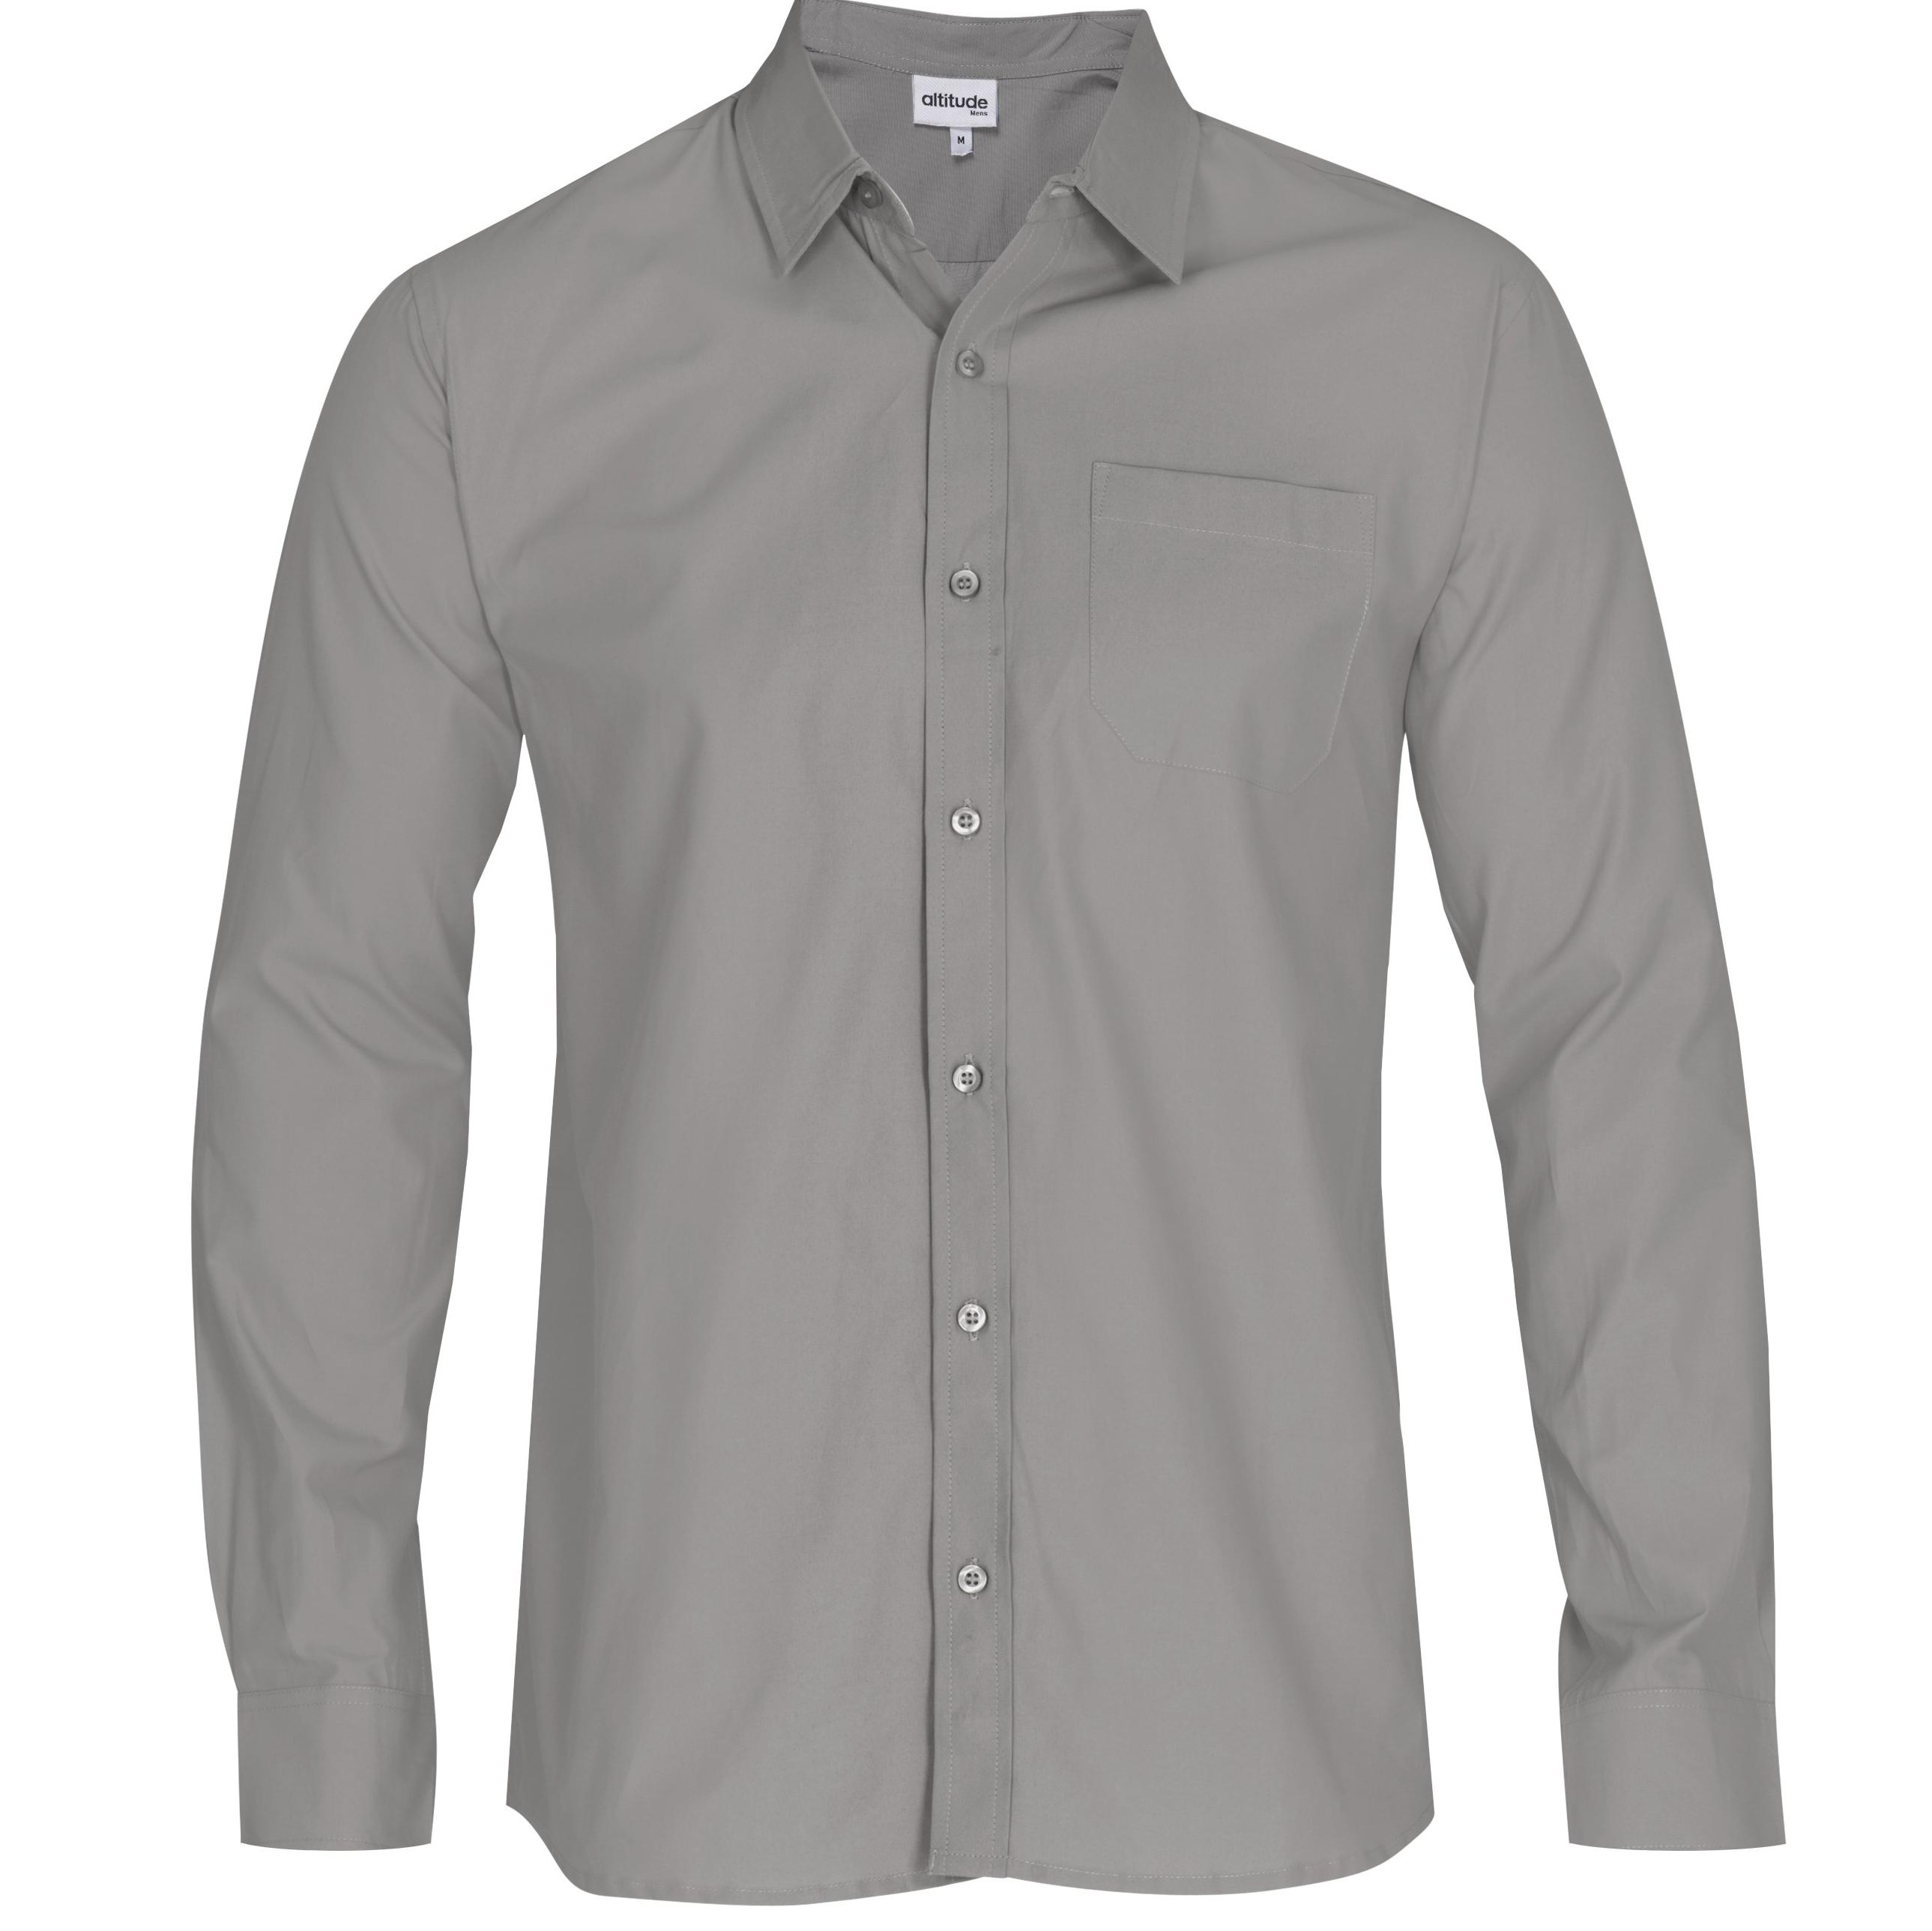 Mens Long Sleeve Catalyst Shirt - Grey Only